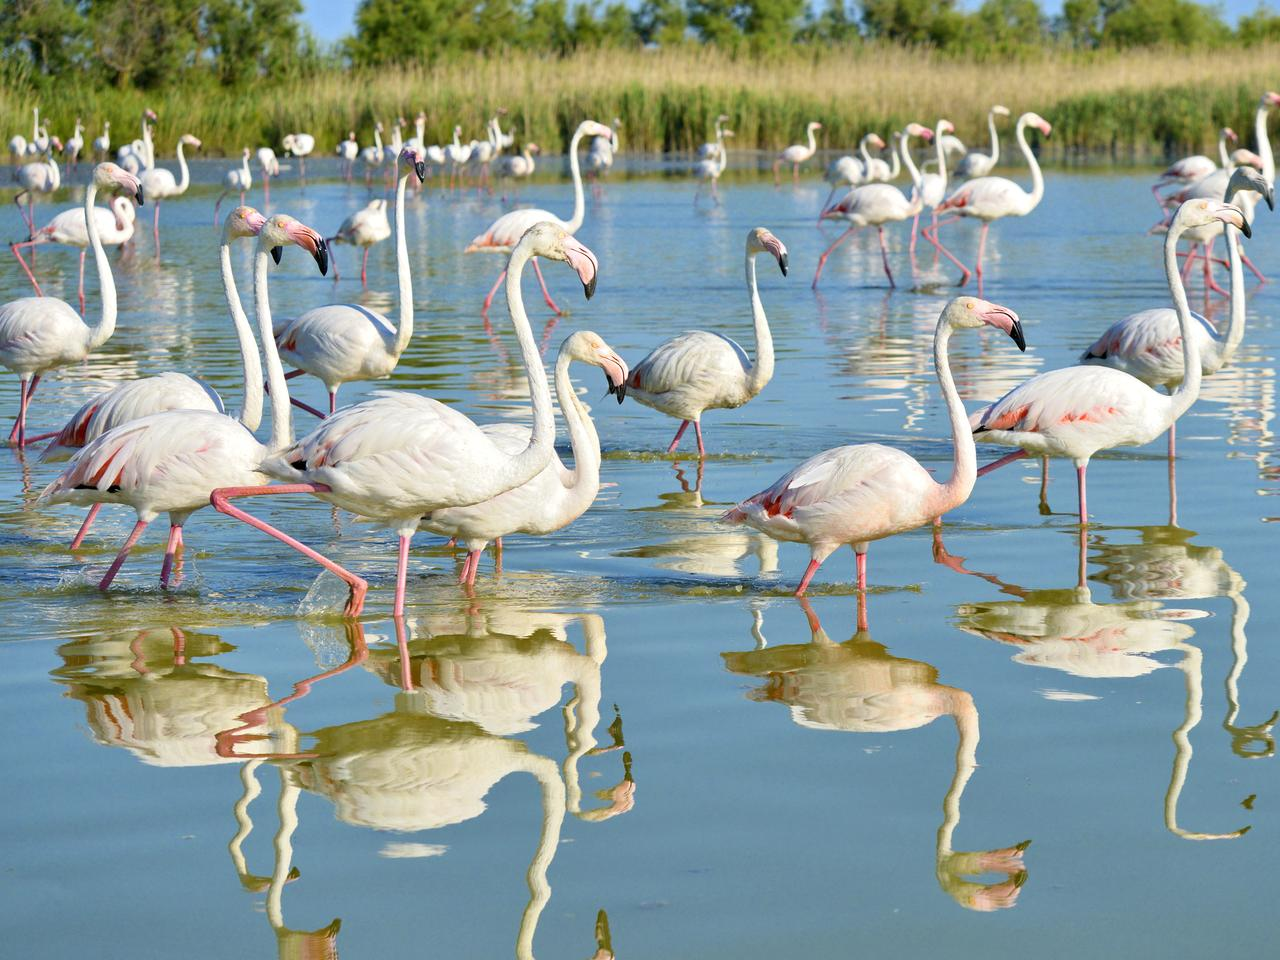 Group of flamingos (Phoenicopterus ruber) walking in water with big reflection, in the Camargue is a natural region located south of Arles, France, between the Mediterranean Sea and the two arms of the Rhône delta